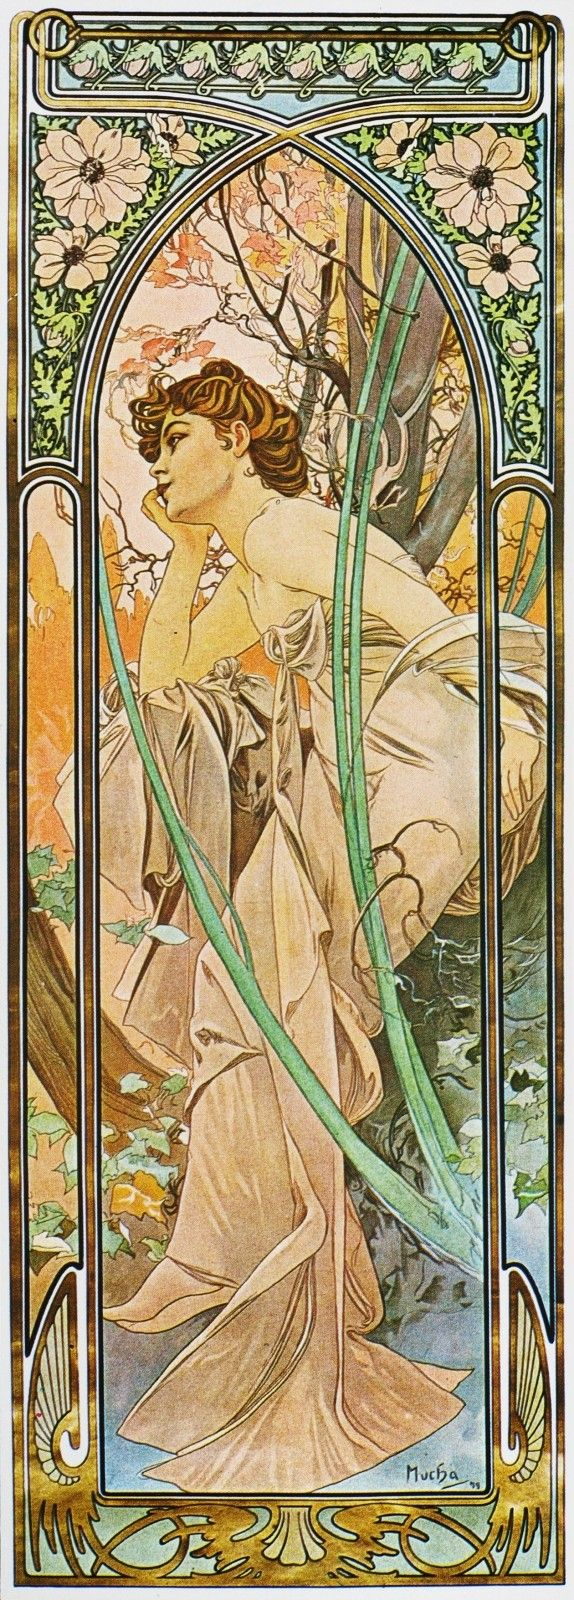 Alfons Mucha. 1899 Evening Reverie. The Hours of the Day